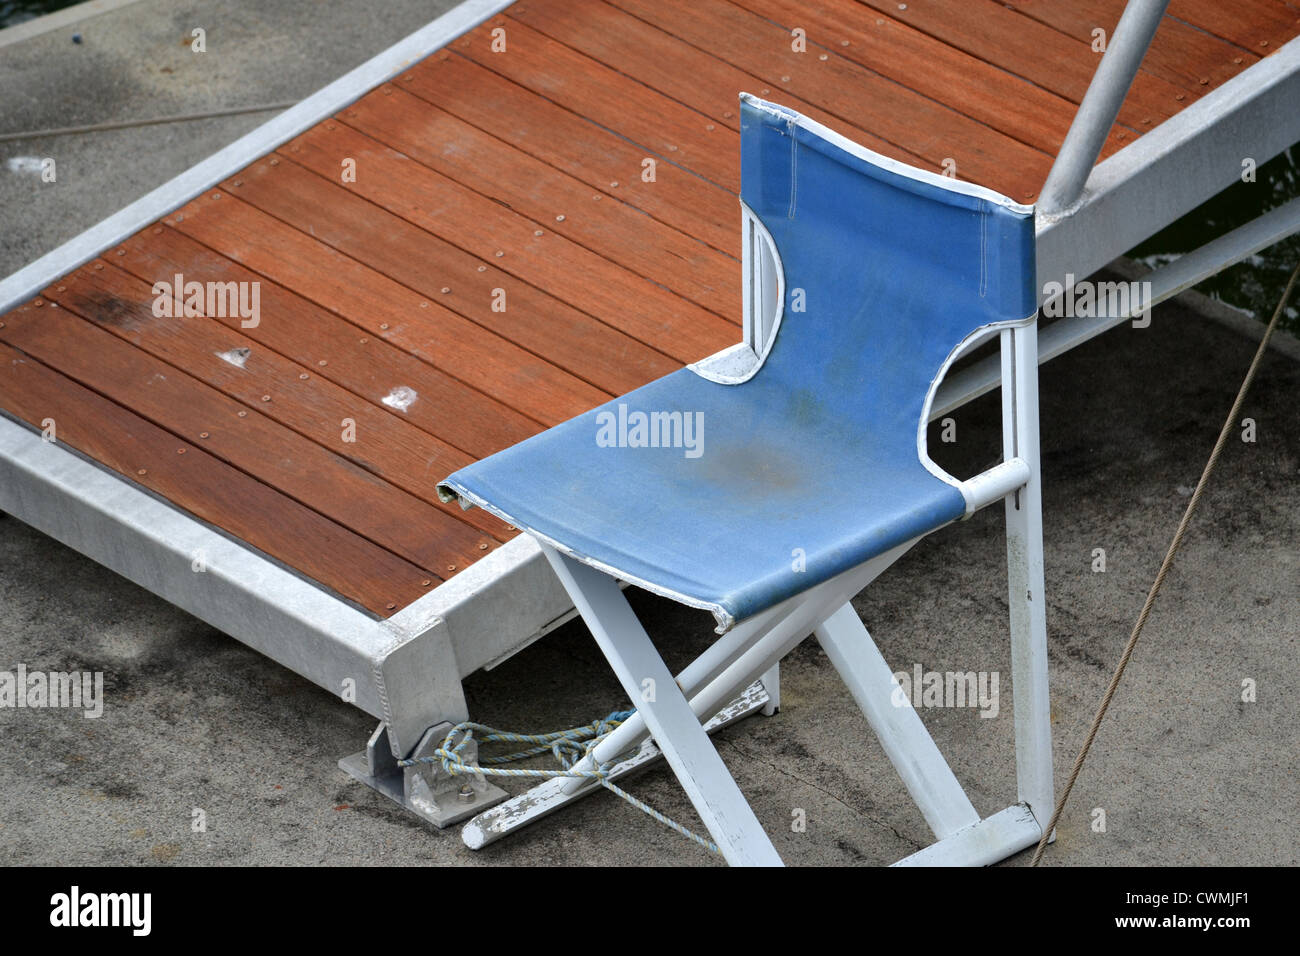 Small Fold Up Chair Foldup Chair Stock Photos Foldup Chair Stock Images Alamy